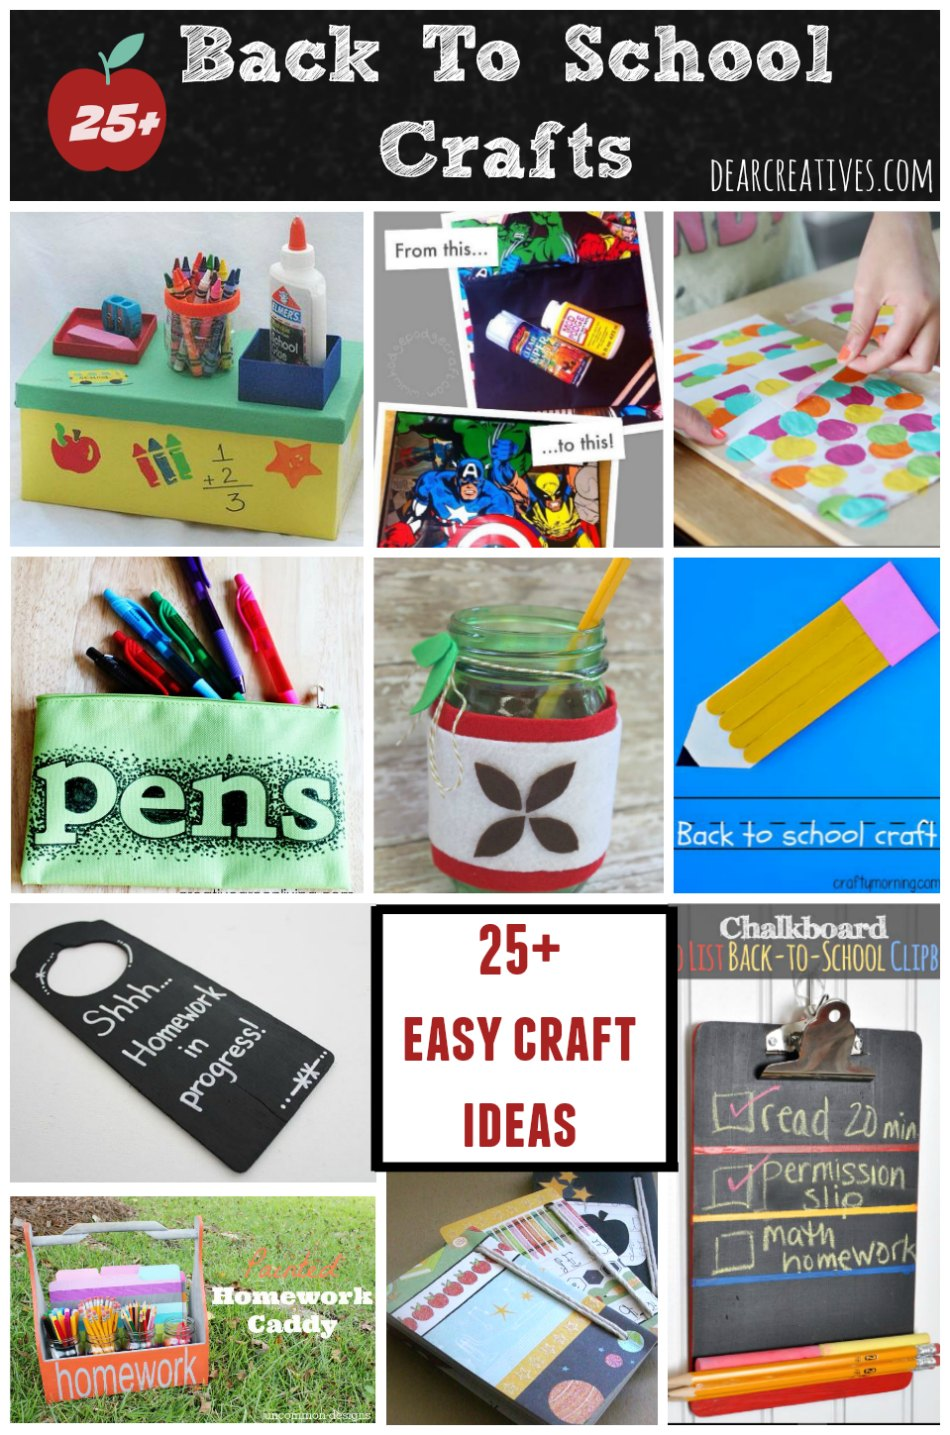 25+ Back To School Crafts That Are Fun And Easy To Make